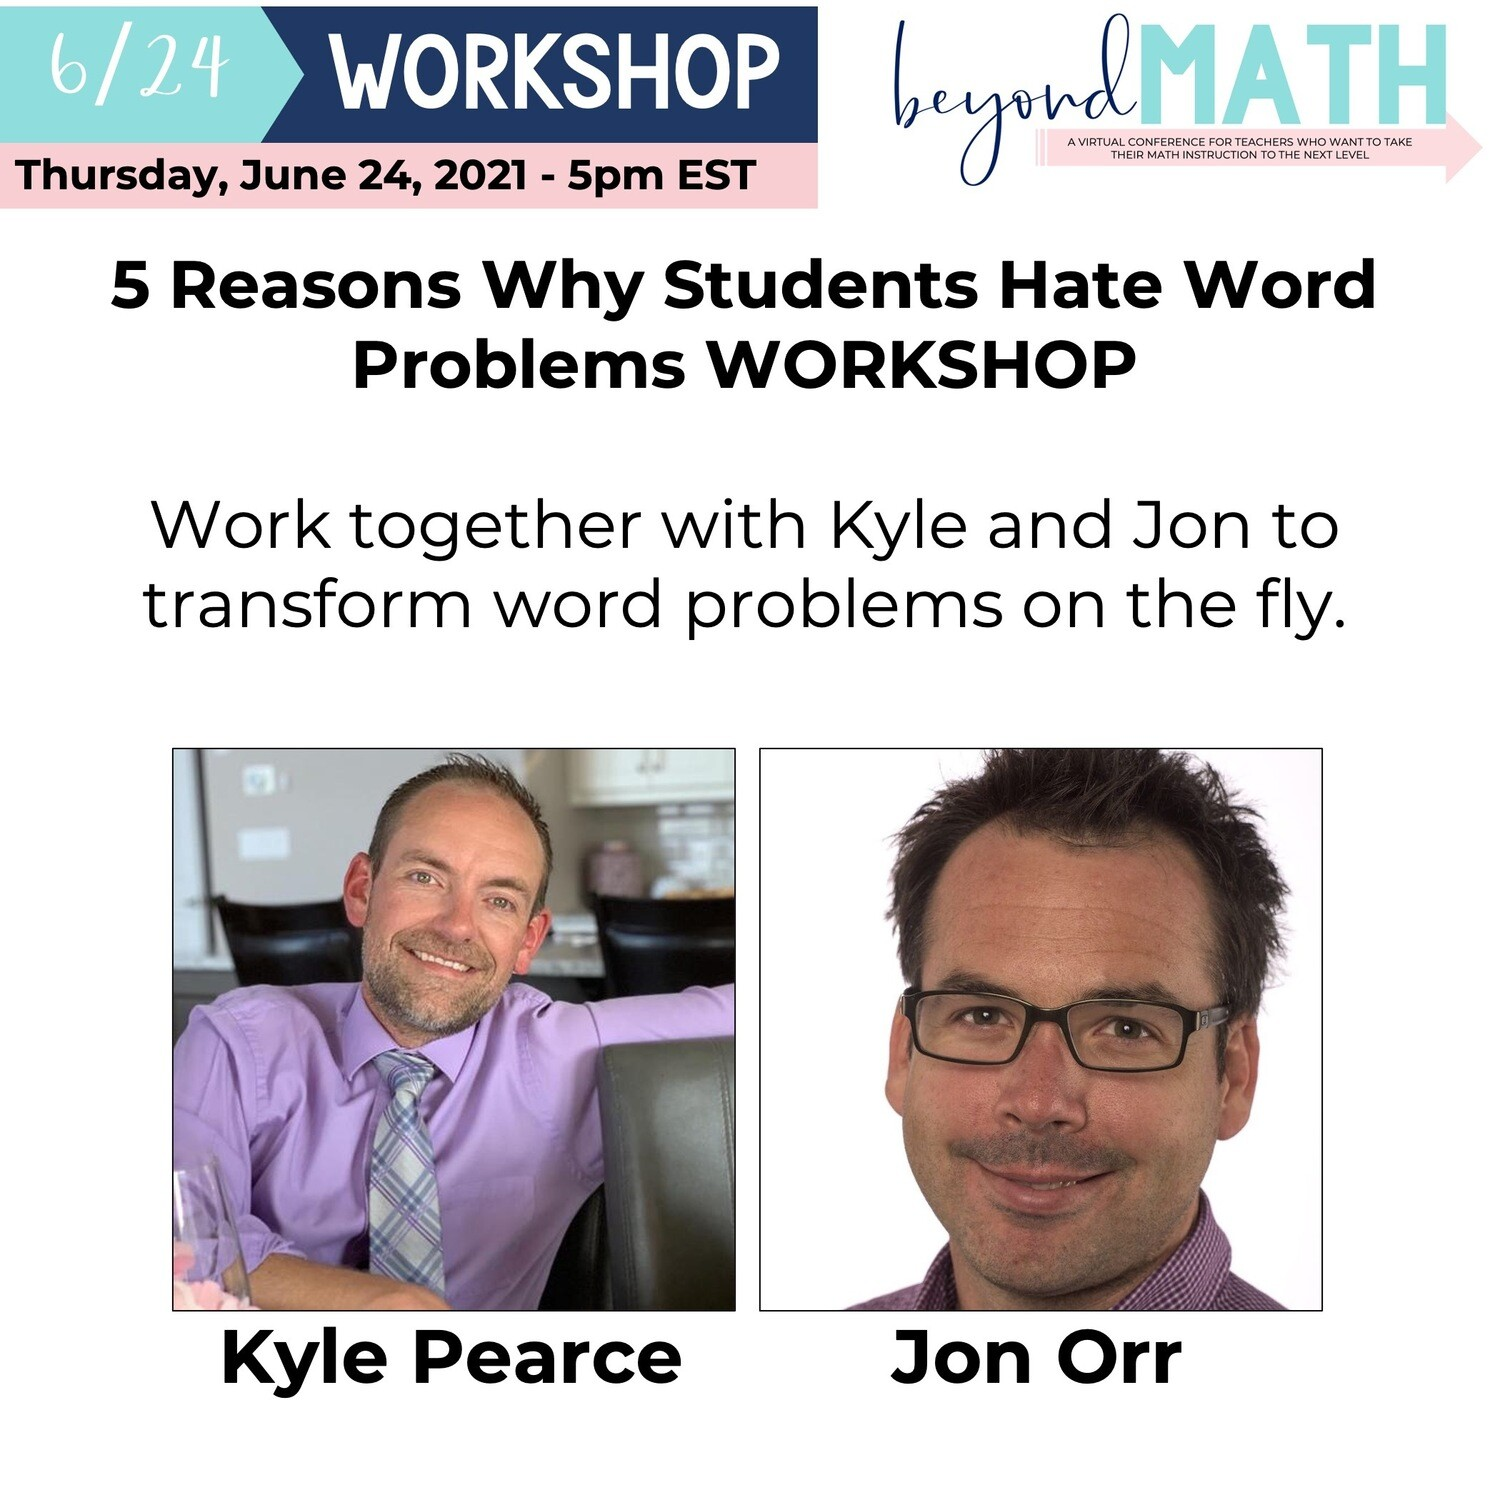 5 Reasons Why Students Hate Word Problems WORKSHOP with Kyle Pearce and Jon Orr